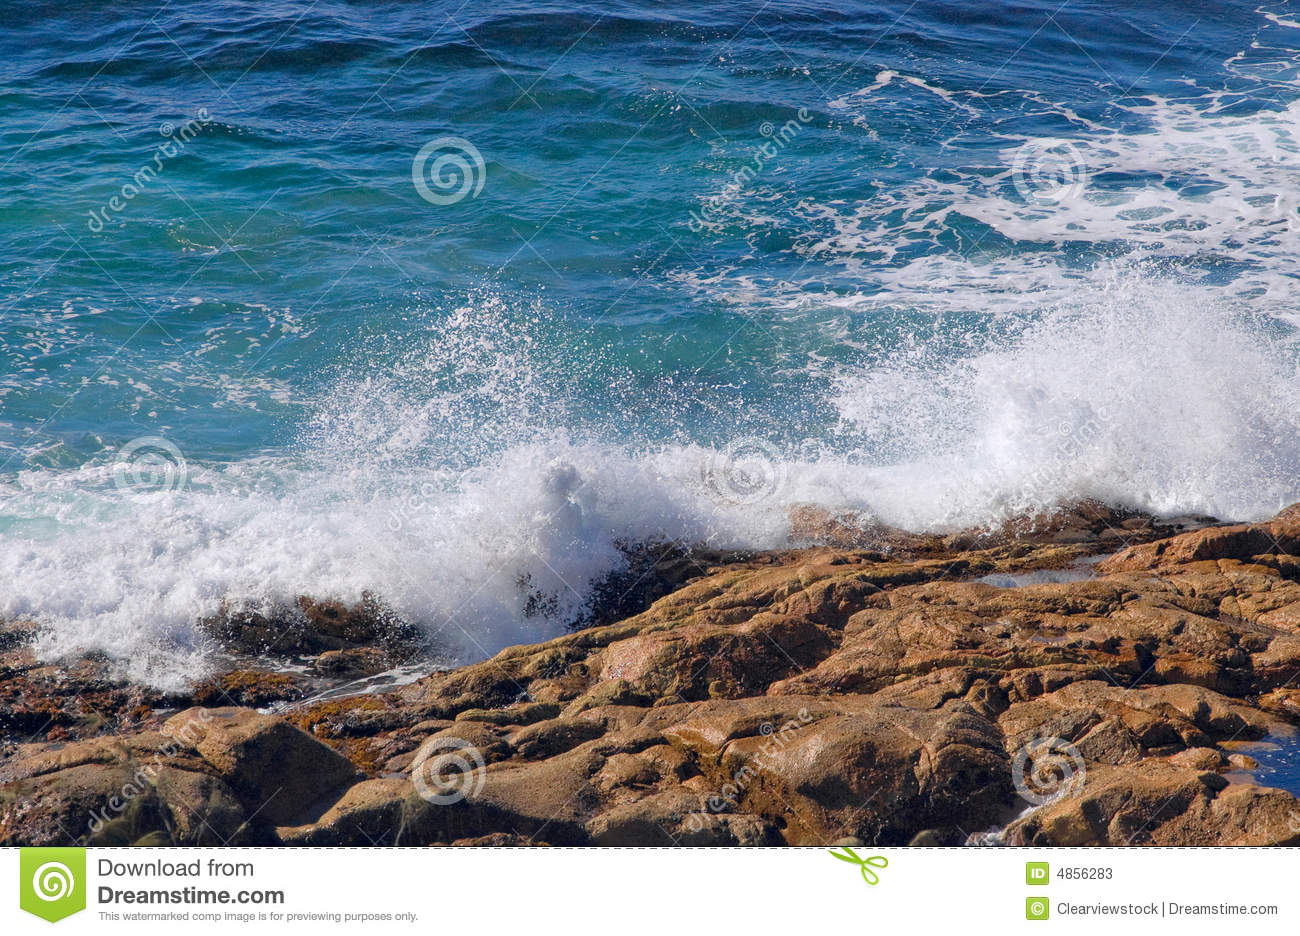 Ocean Waves Crashing On Rocks Stock Photos - Image: 4856283